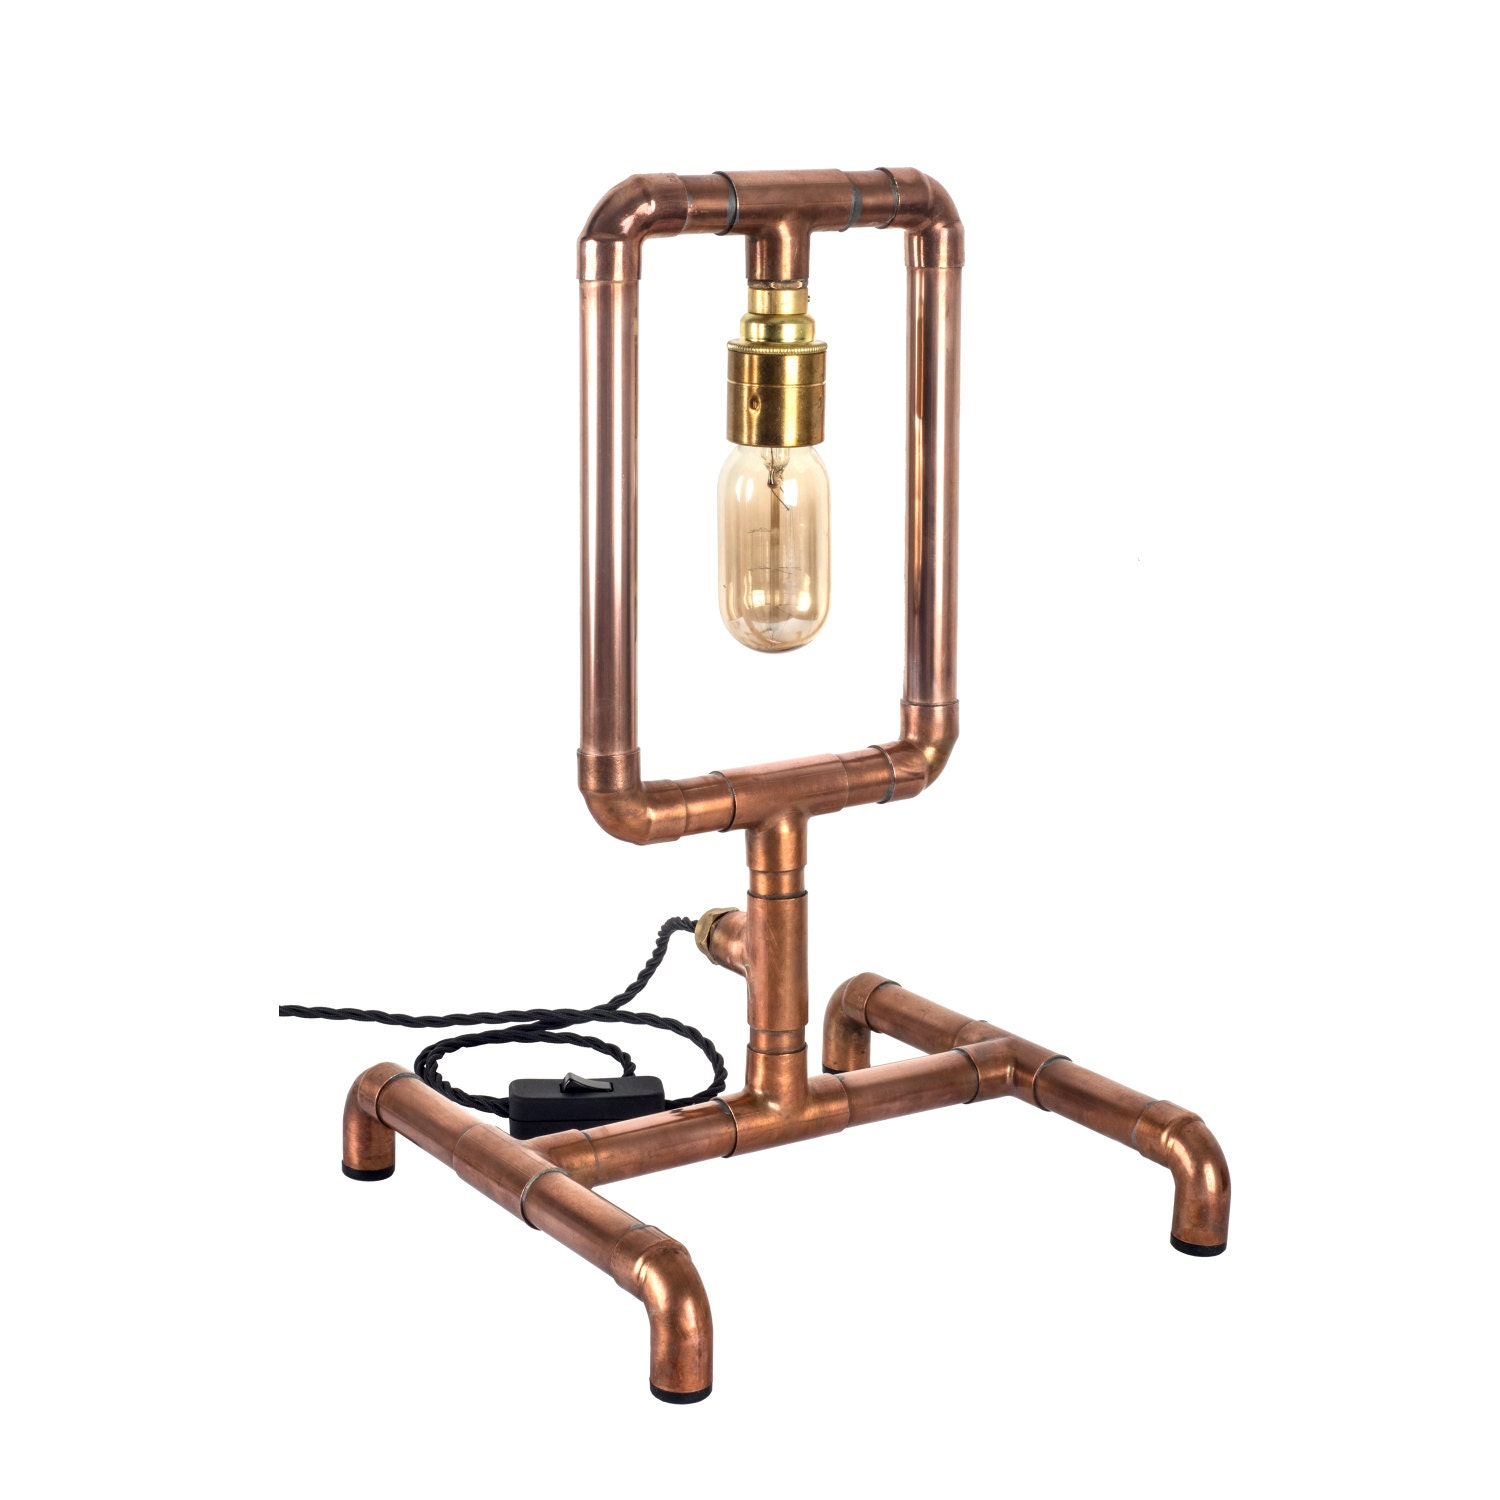 Copper pipe industrial light loop table lamp e27 edison for Table y copper tube